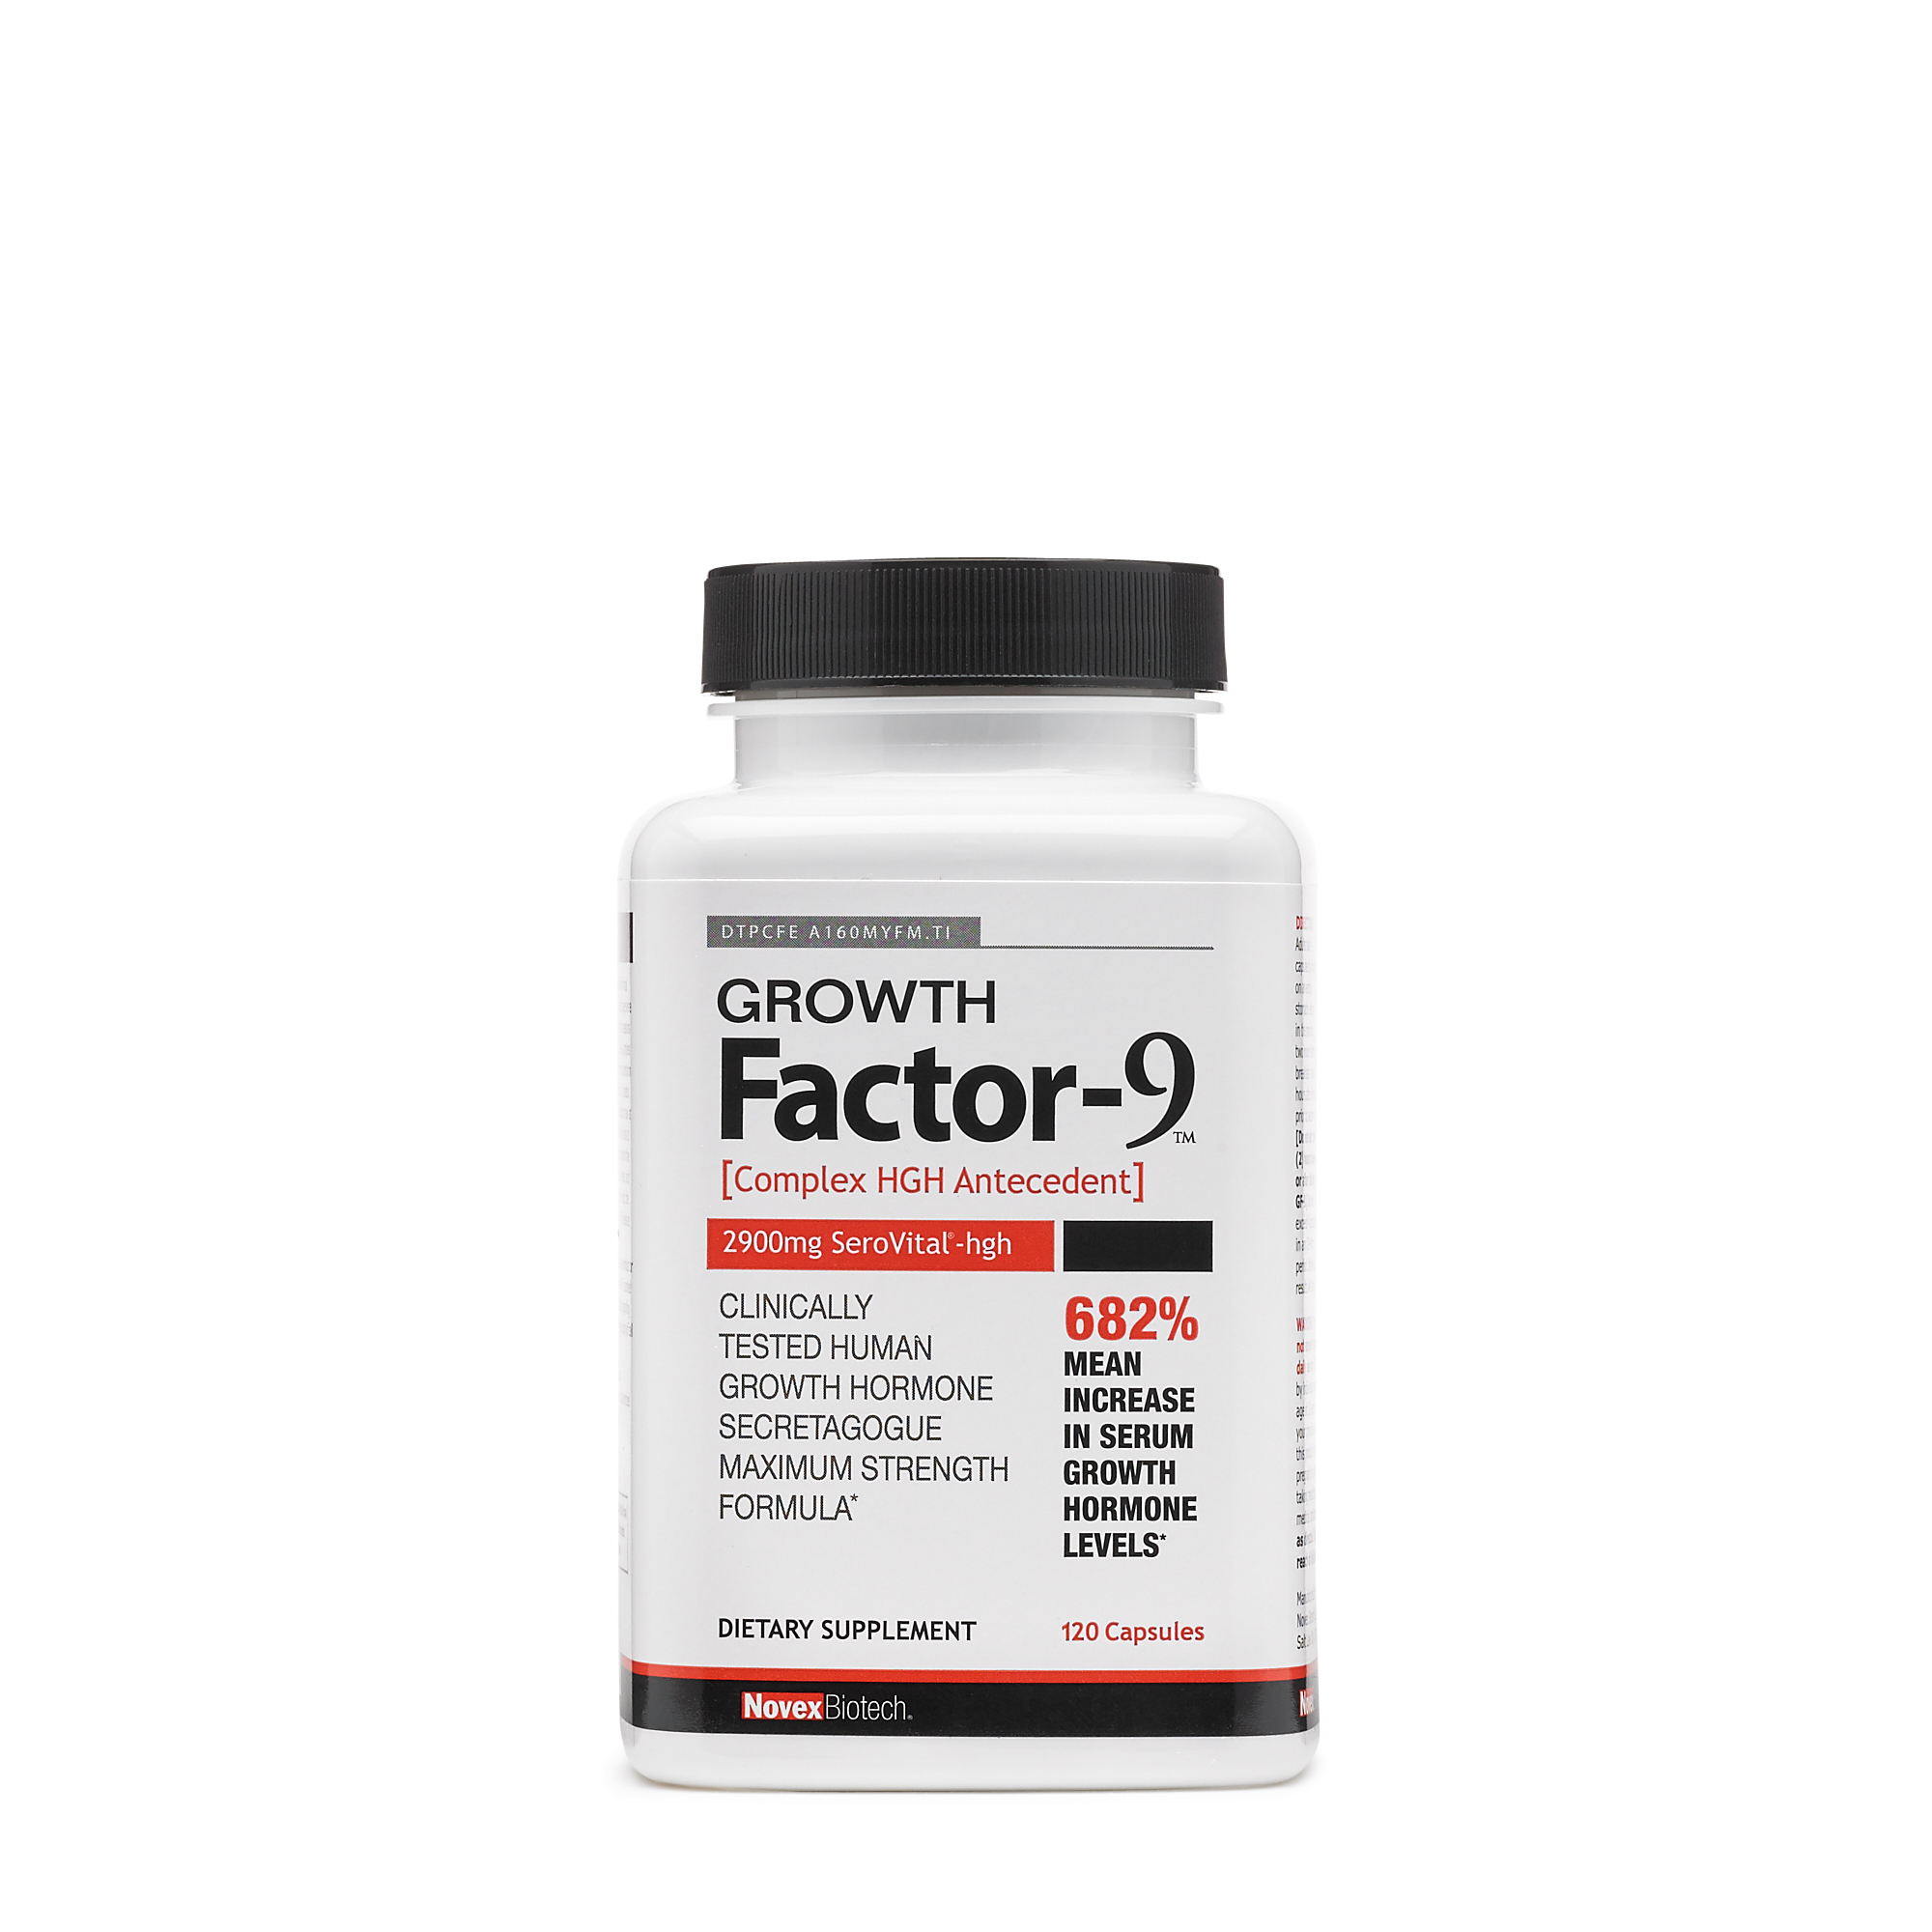 Novex Biotech Growth Factor 9 Gnc